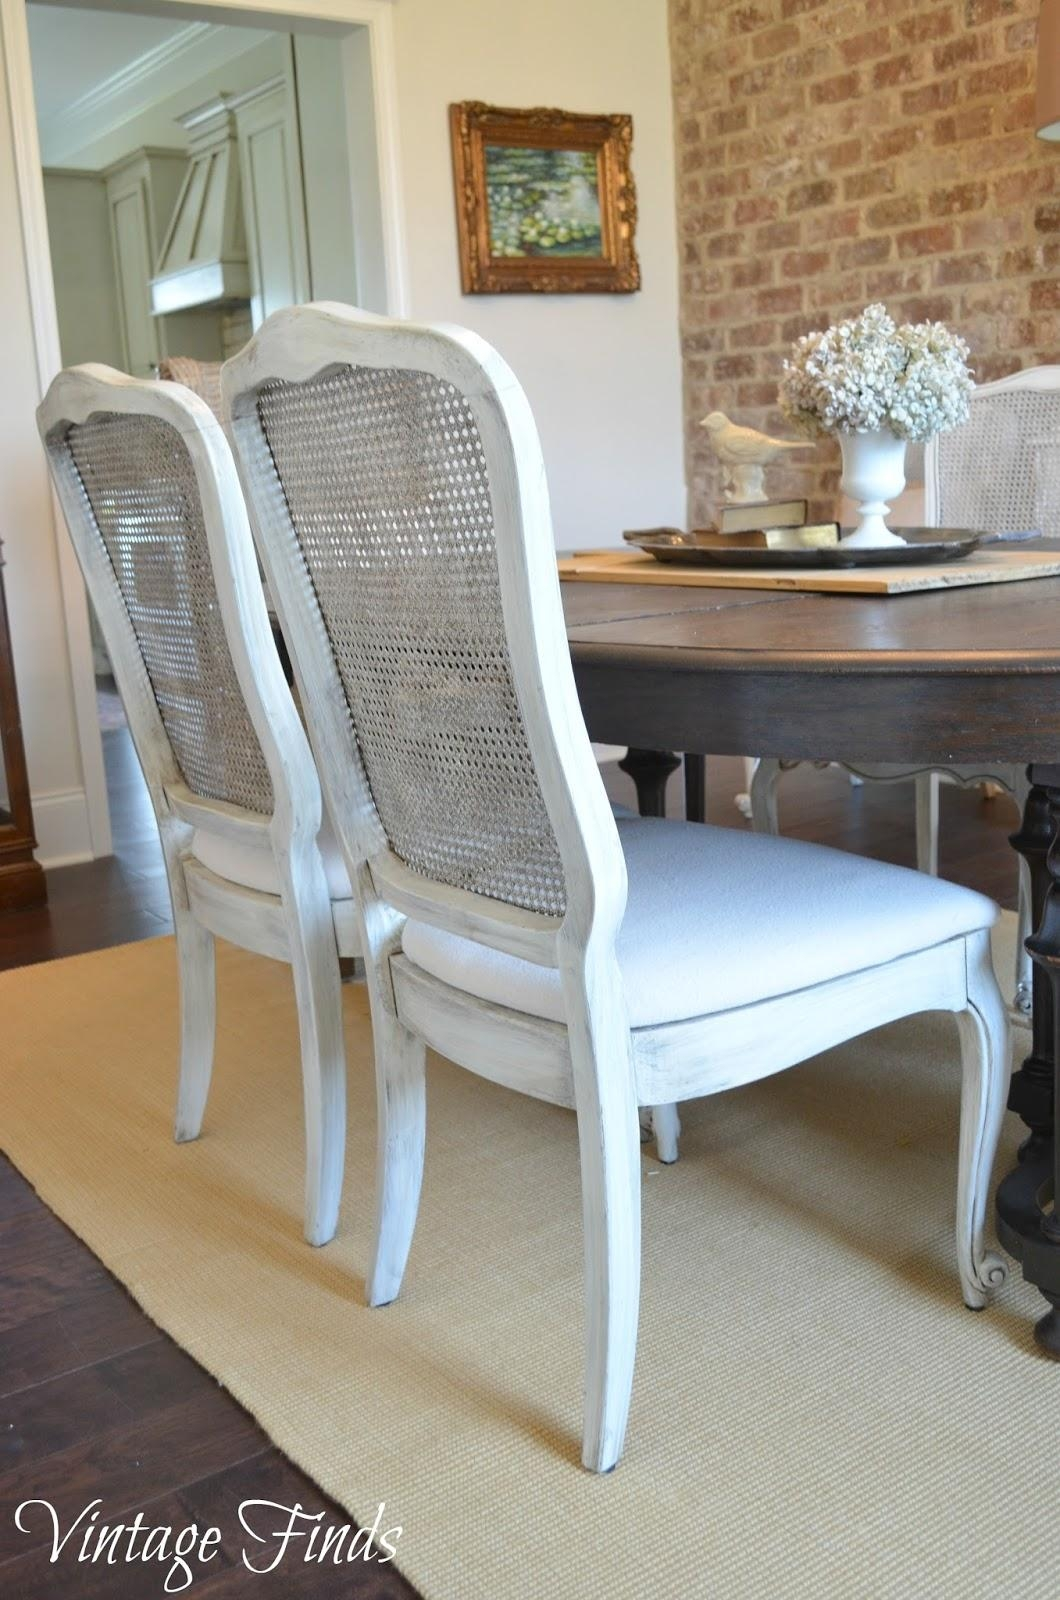 Vintage Finds: New House: Updated Dining Chairs Within White Cane Sofas (View 18 of 25)